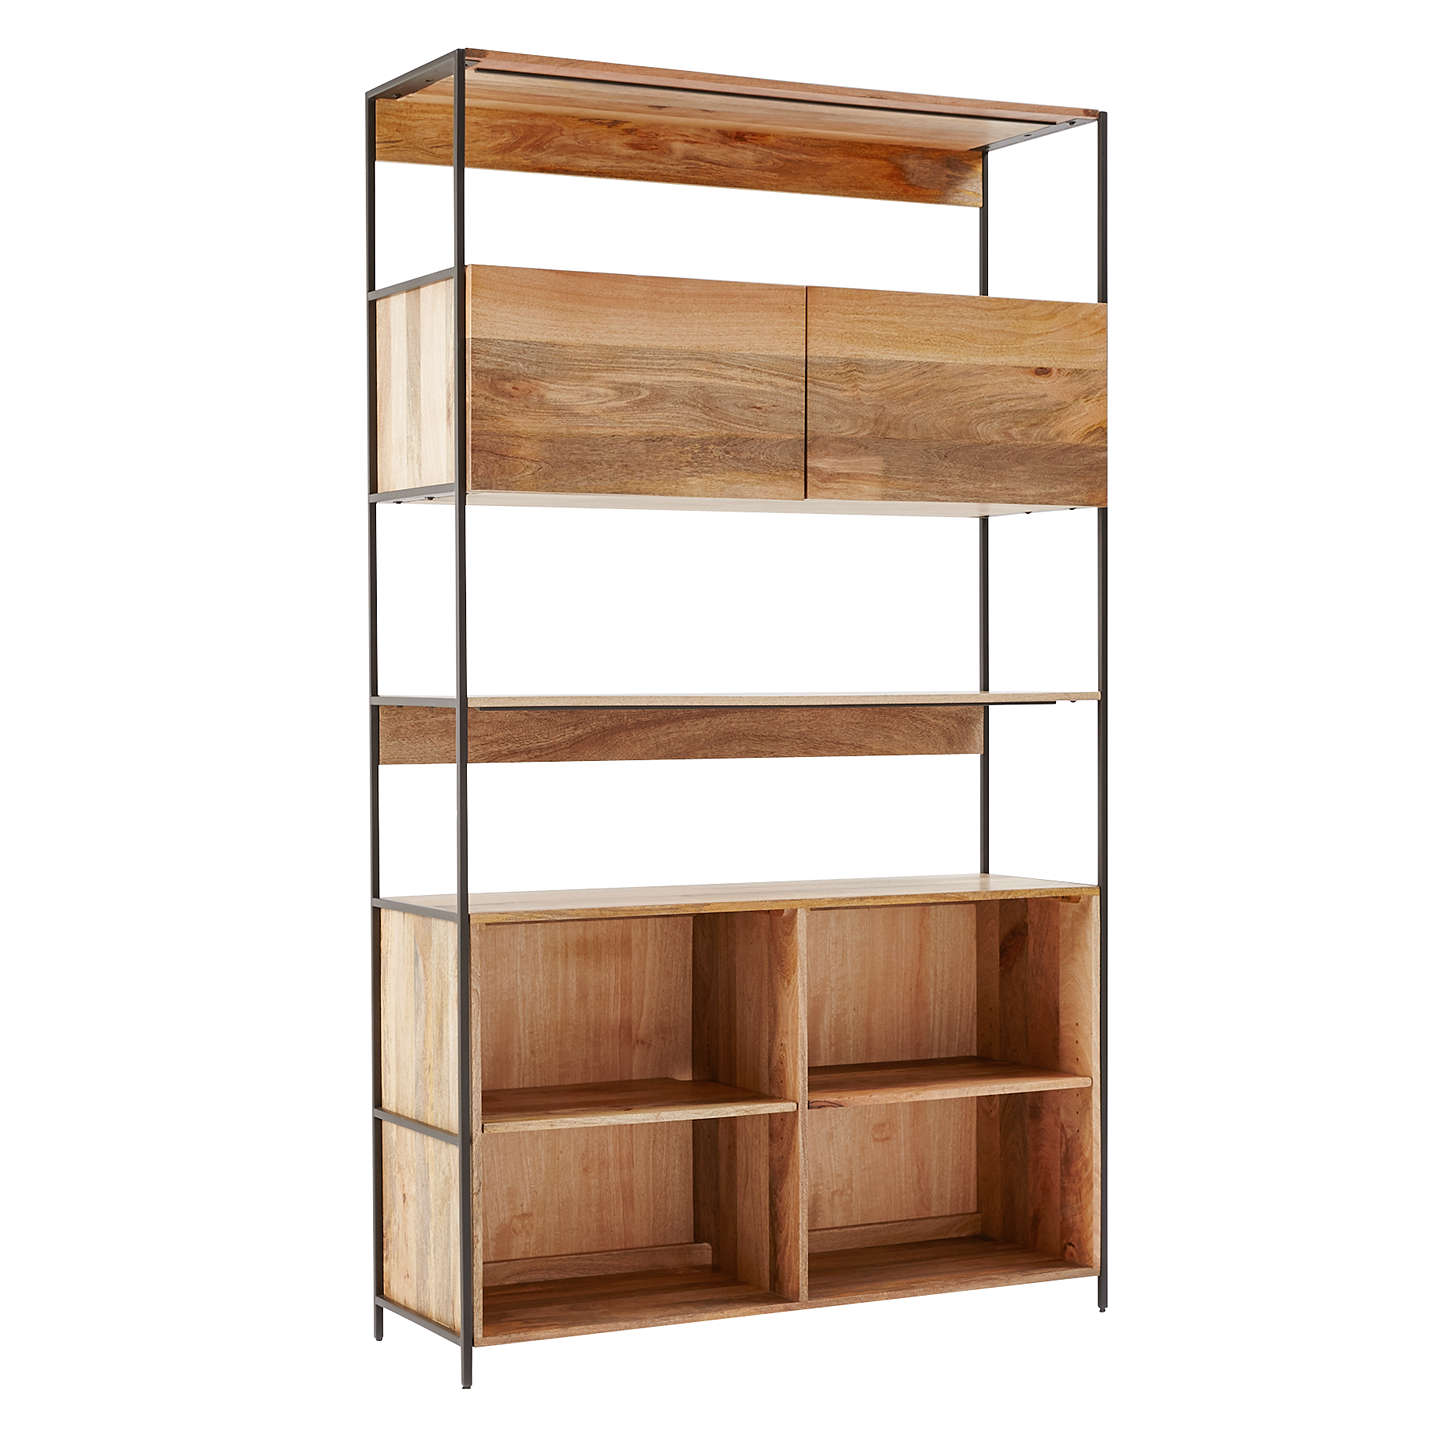 product ksiazki tif bookcase interiors hifi wooden na regal bookcases m with closed vox door en